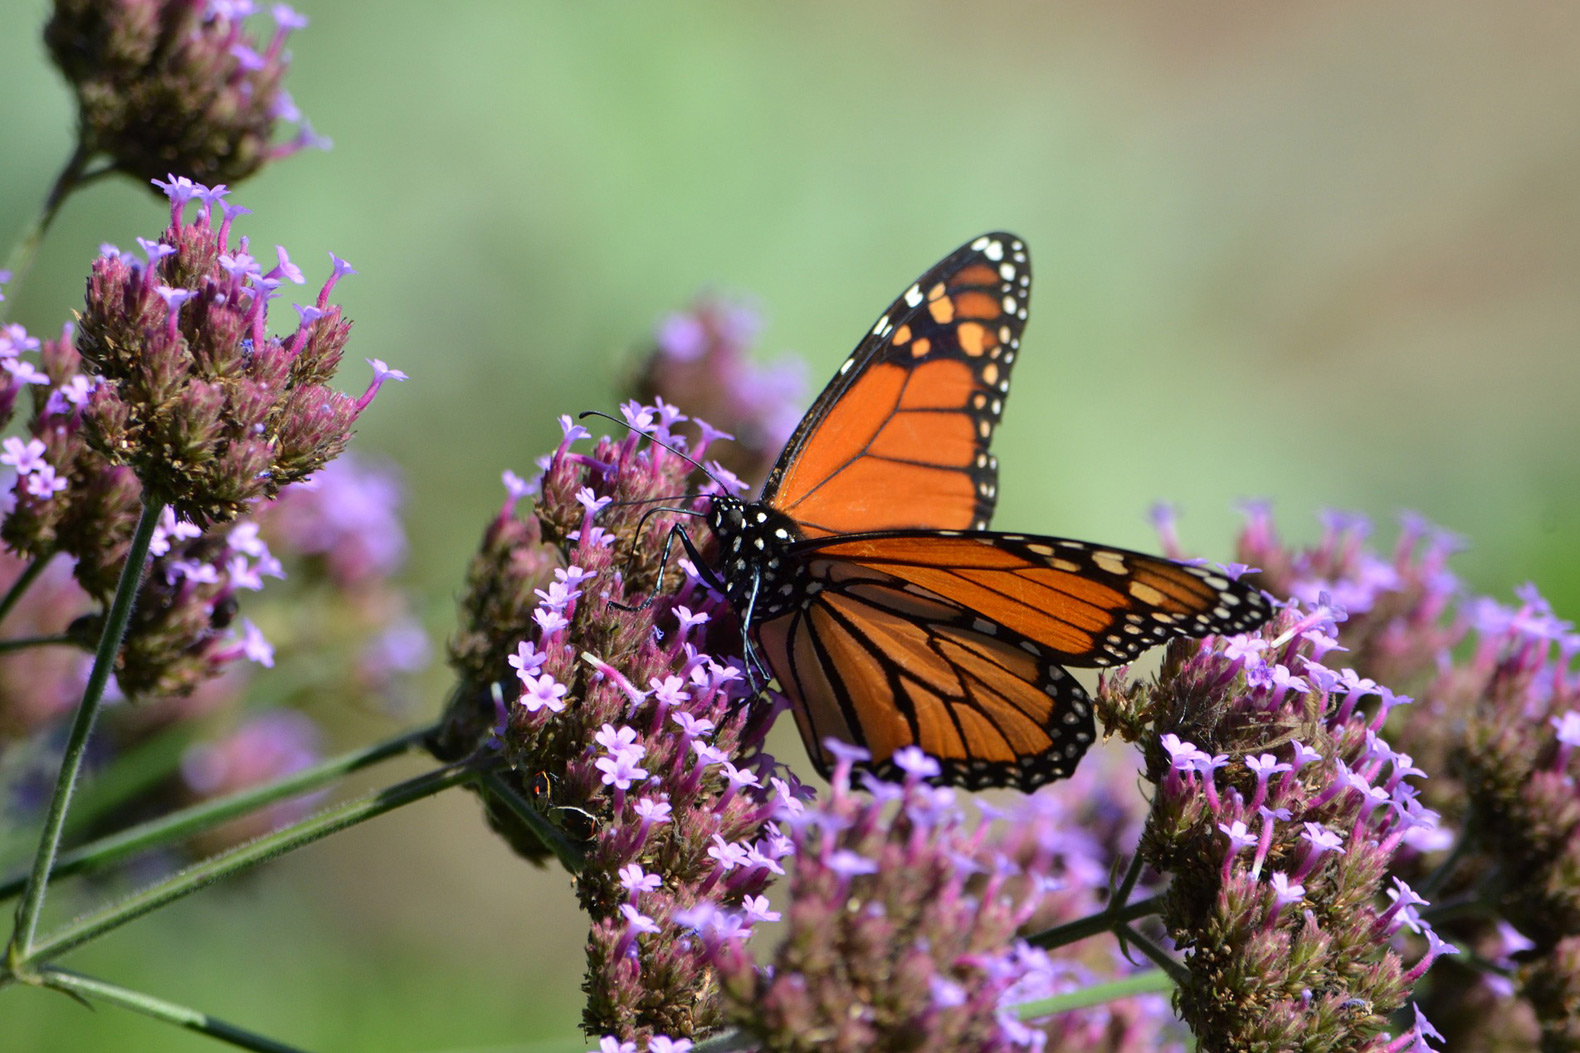 Monarch butterfly conservation groups fight to conserve the species